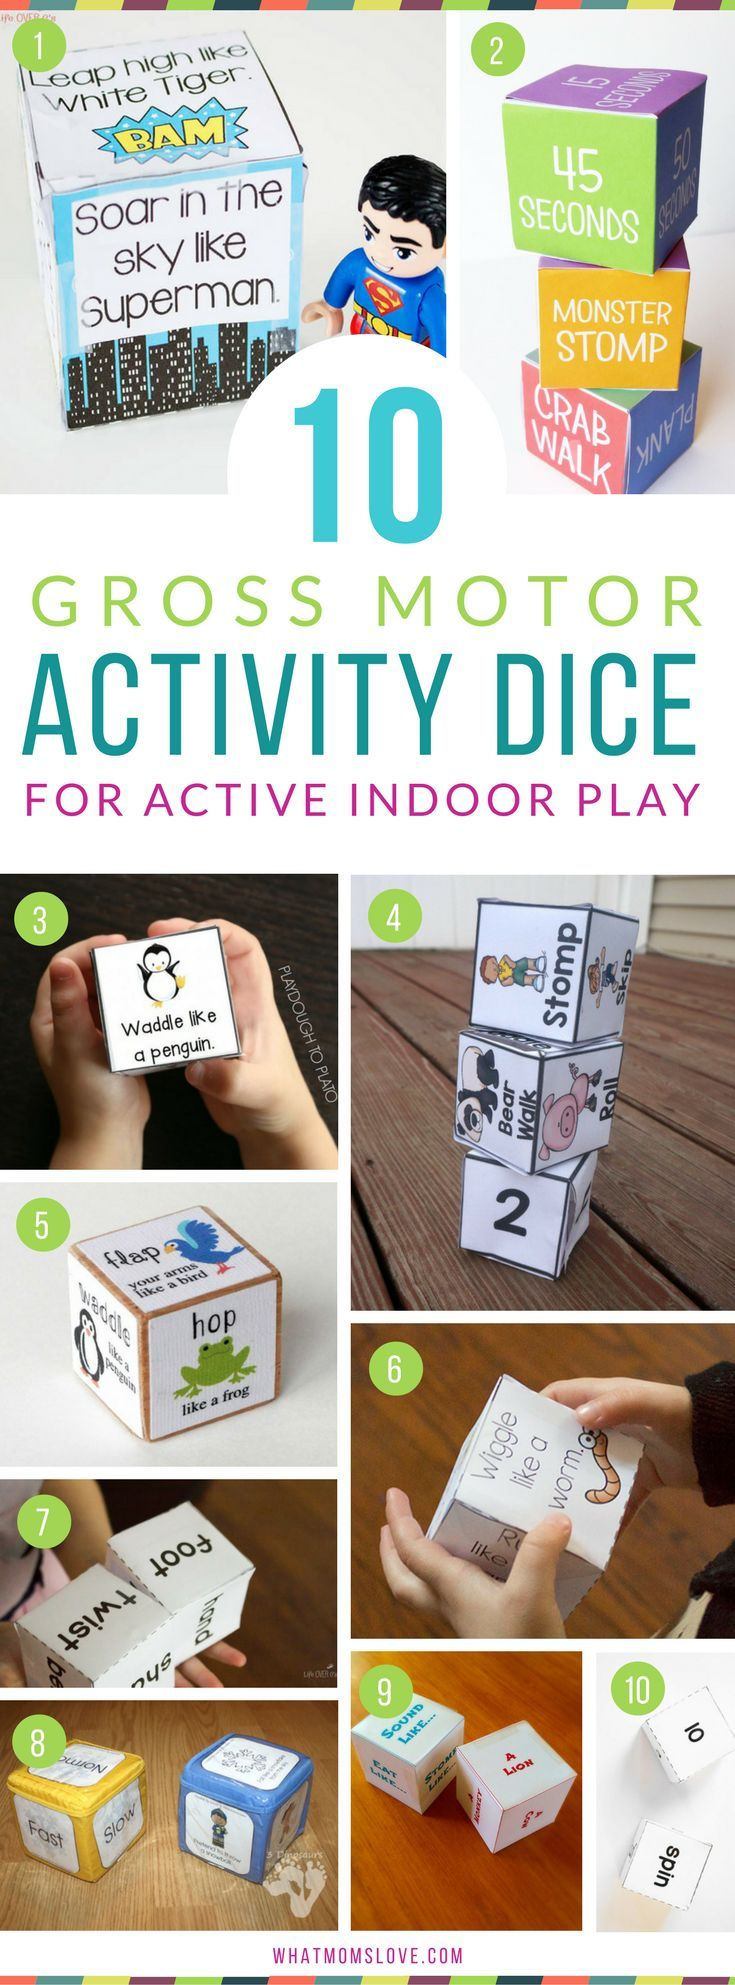 Gross Motor Activity Dice For Kids   Free Printable Movement Dice perfect for Brain Breaks, Boredom Busters and staying active indoors   Fun and physical game to get energy out inside - for the full list of Active Indoor Games and Activities For Kids see